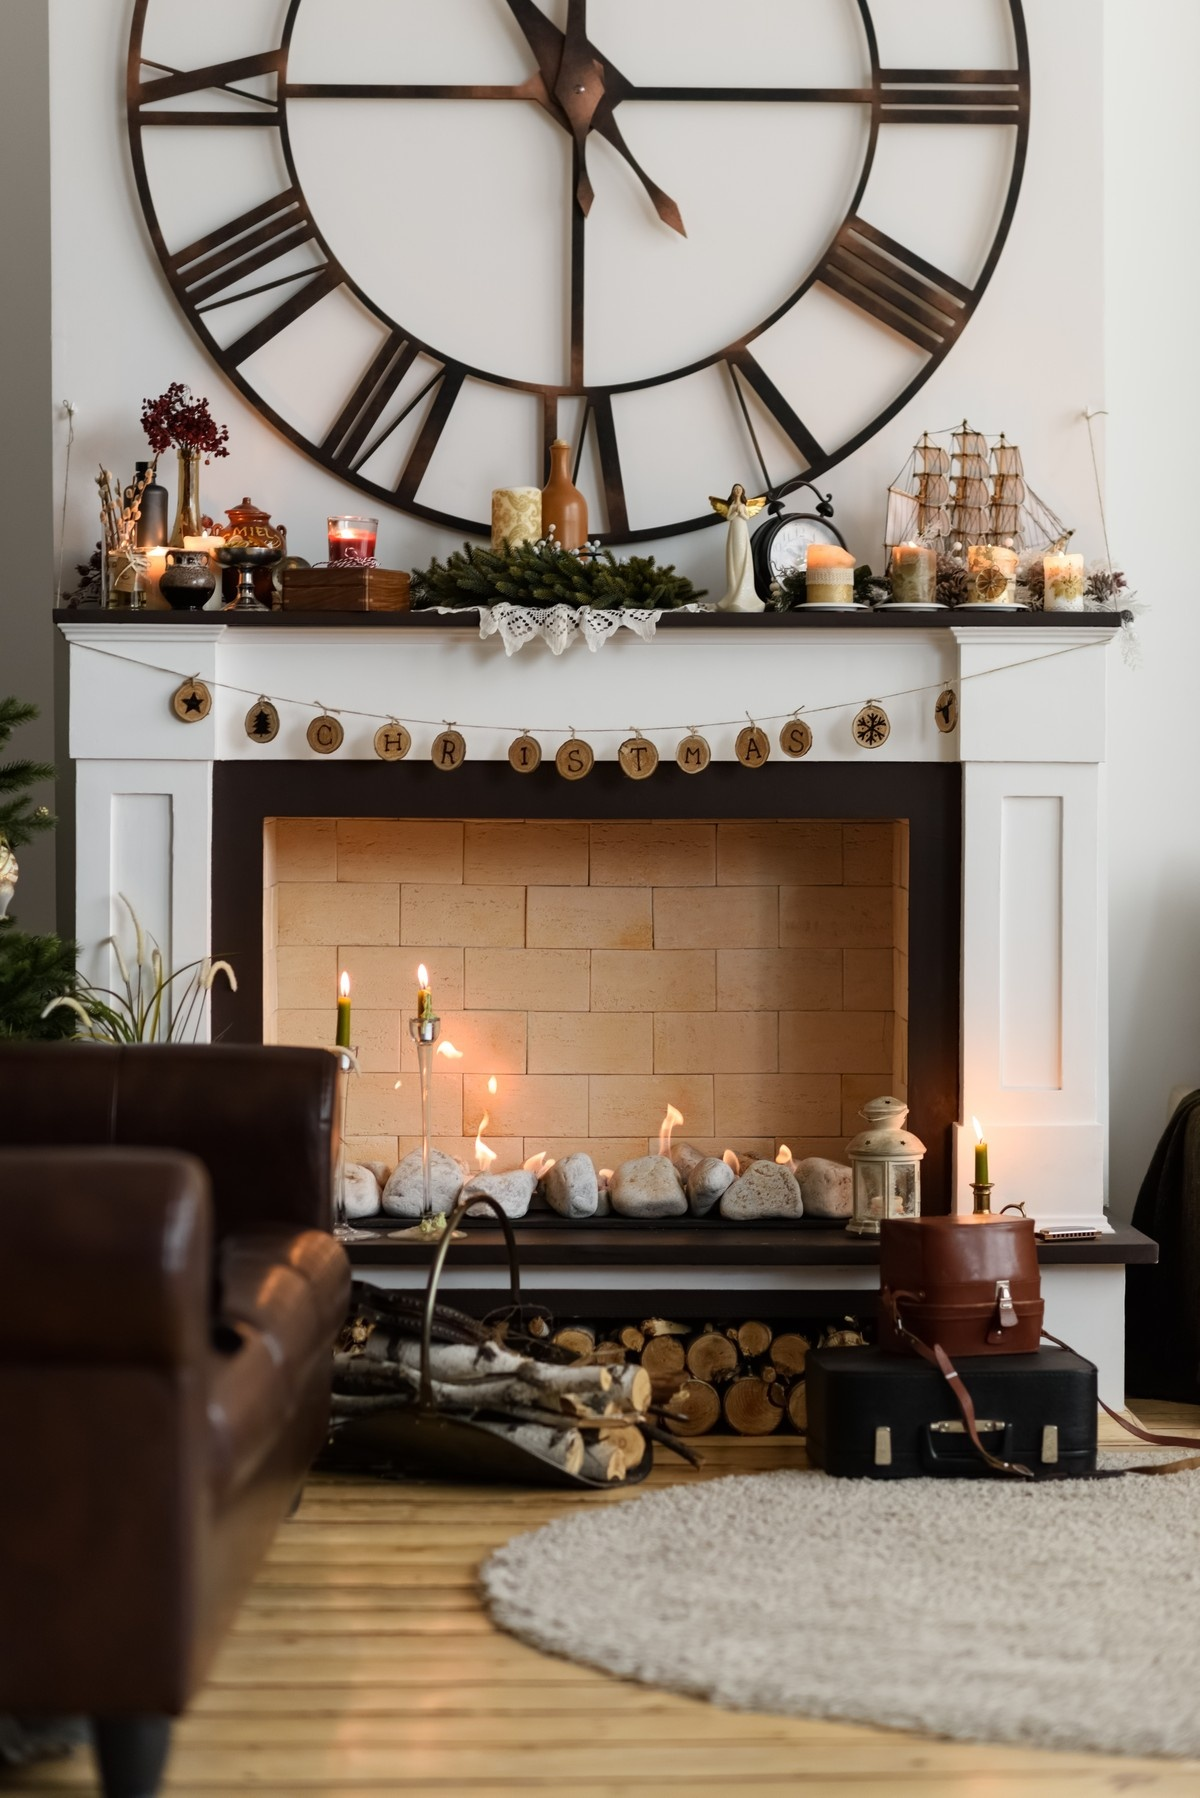 10 DIY Ways to Decorate Your Fireplace Mantel - Celebrate the Holidays